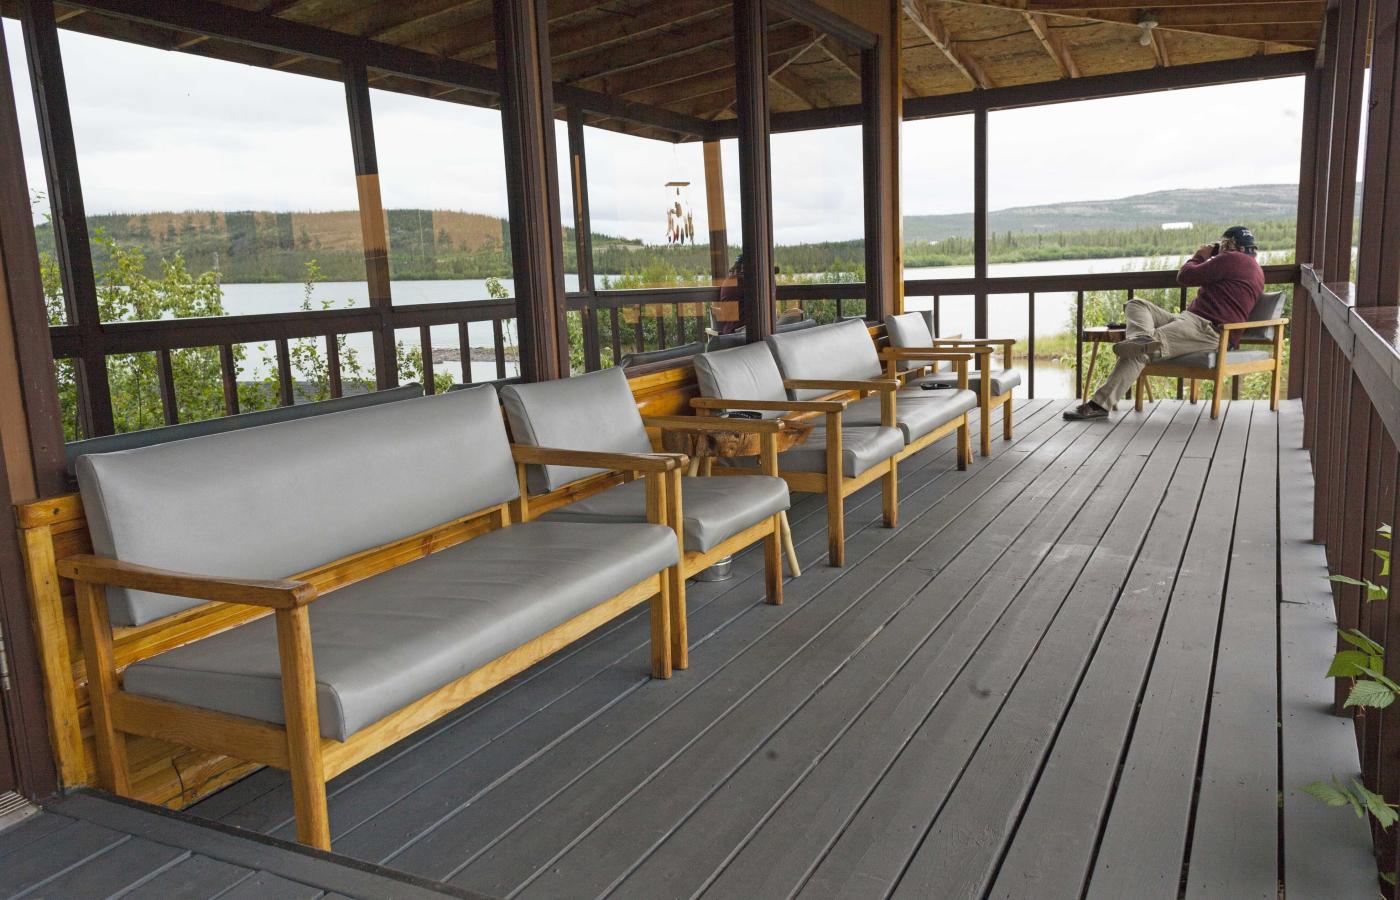 Have a comfortable stay at NWT fishing lodges